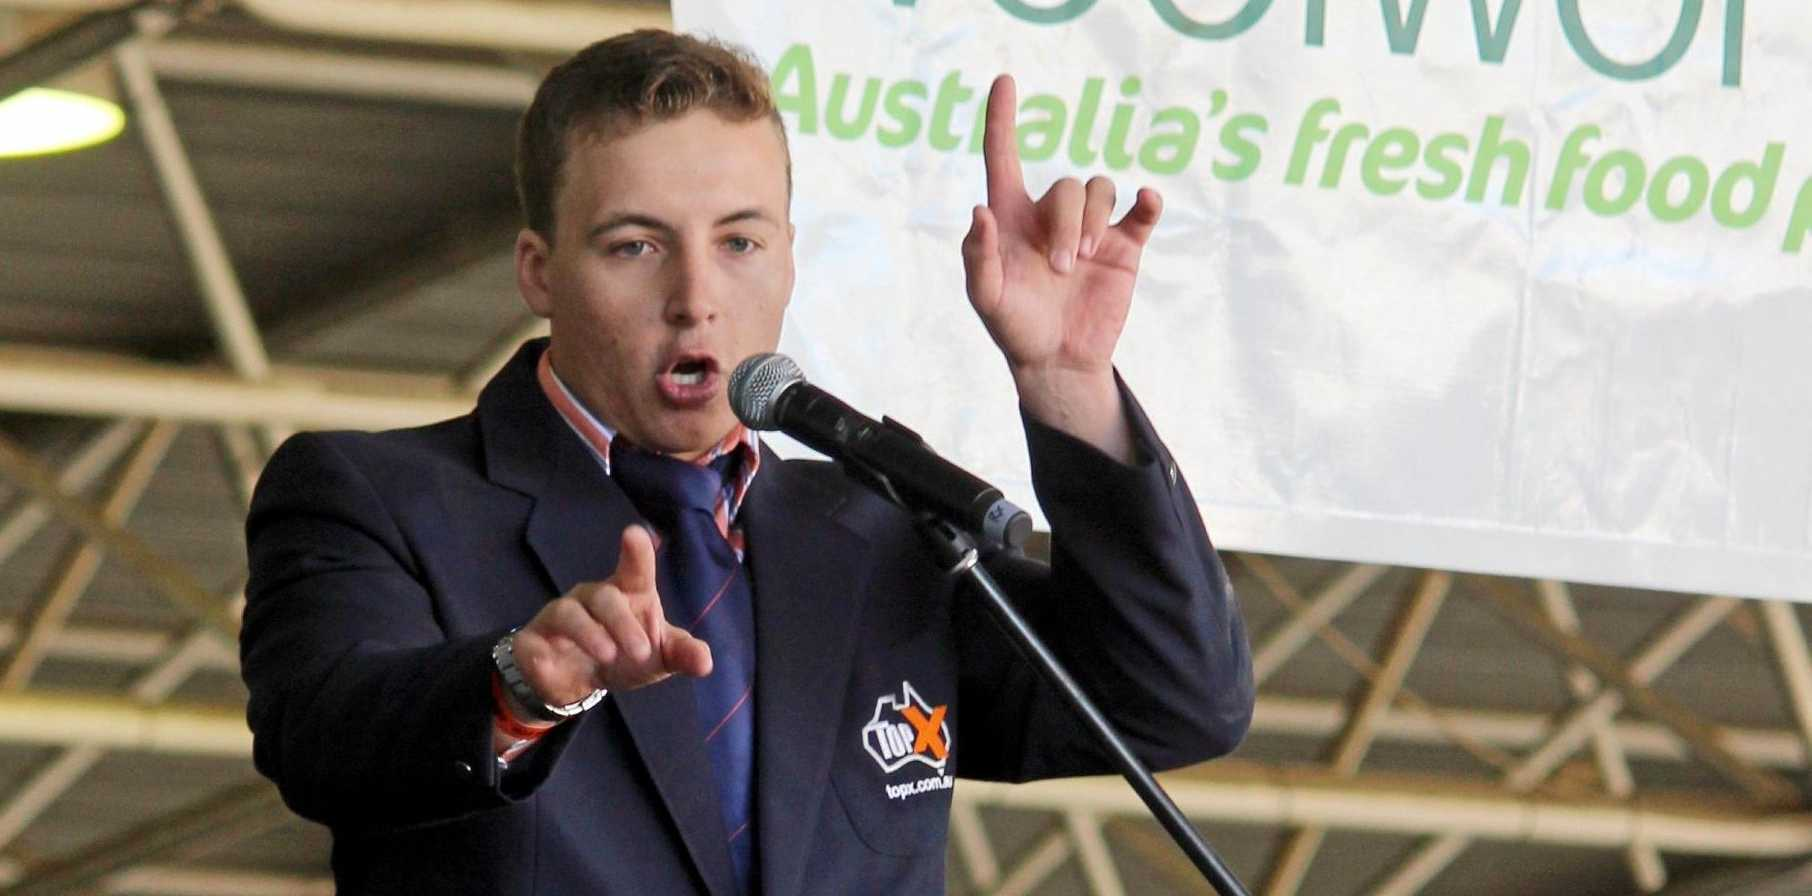 Lincoln McKinlay, from TopX Gracemere, won the National Young Auctioneer competition.